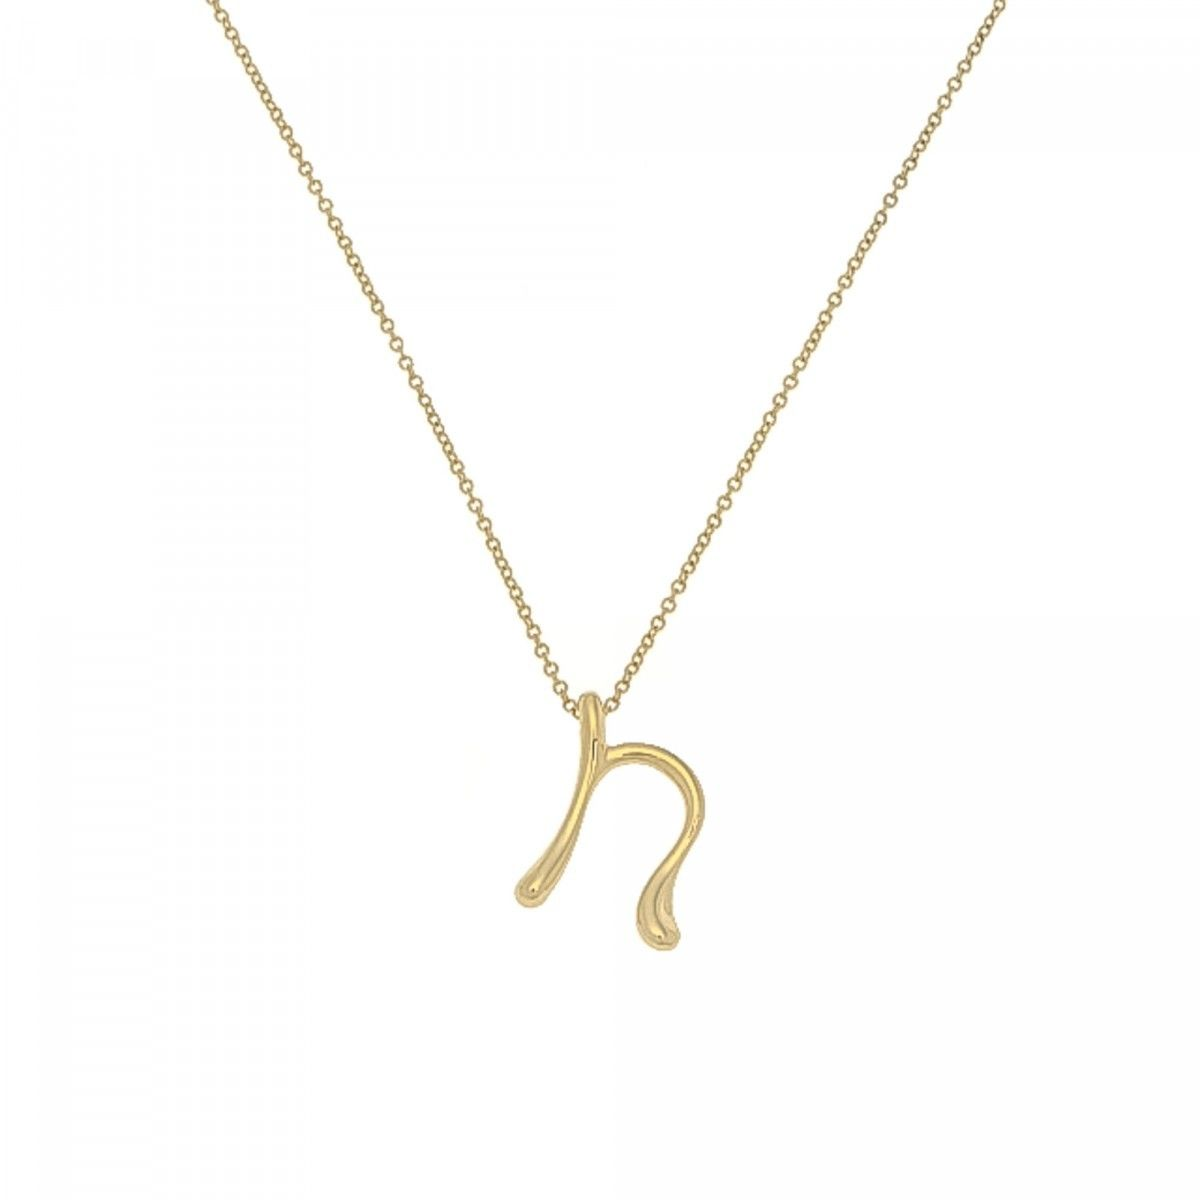 boodles initial co pendant necklace scale false letter aetherair crop upscale asli subsampling alphabet